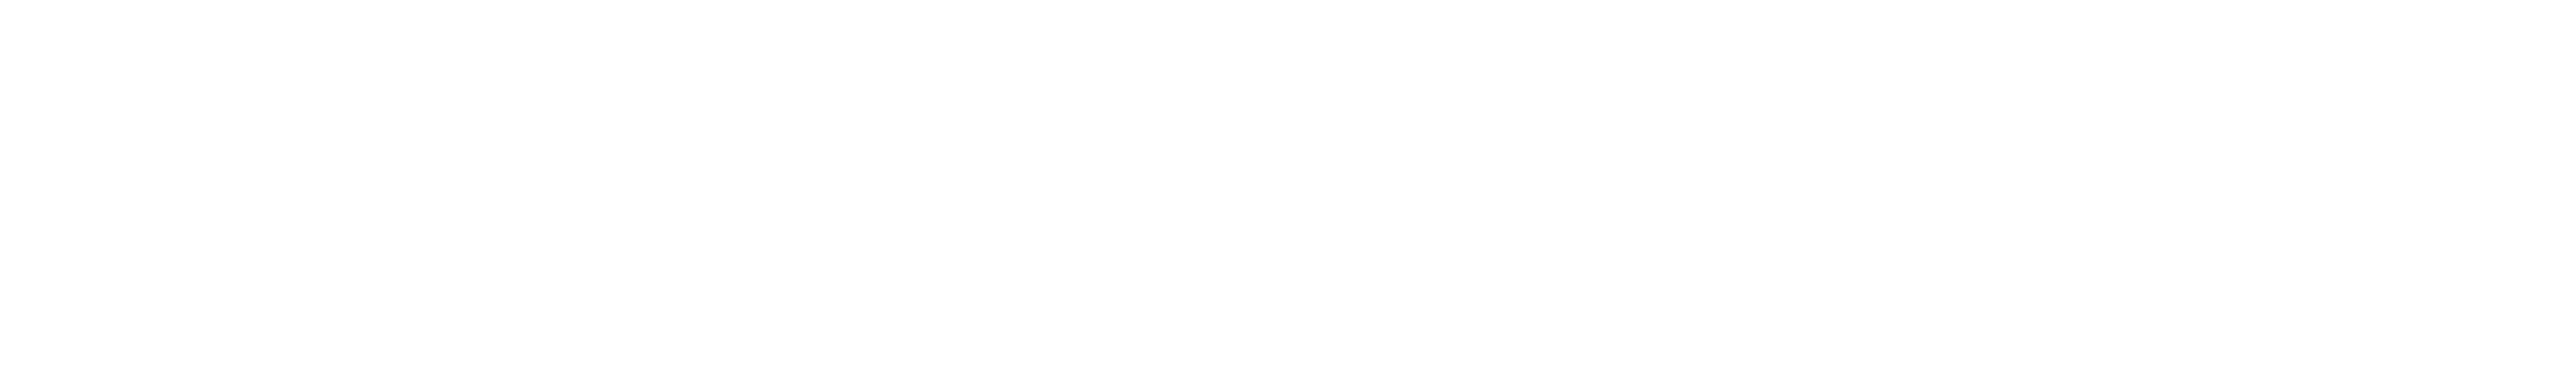 Planting Field Web Log